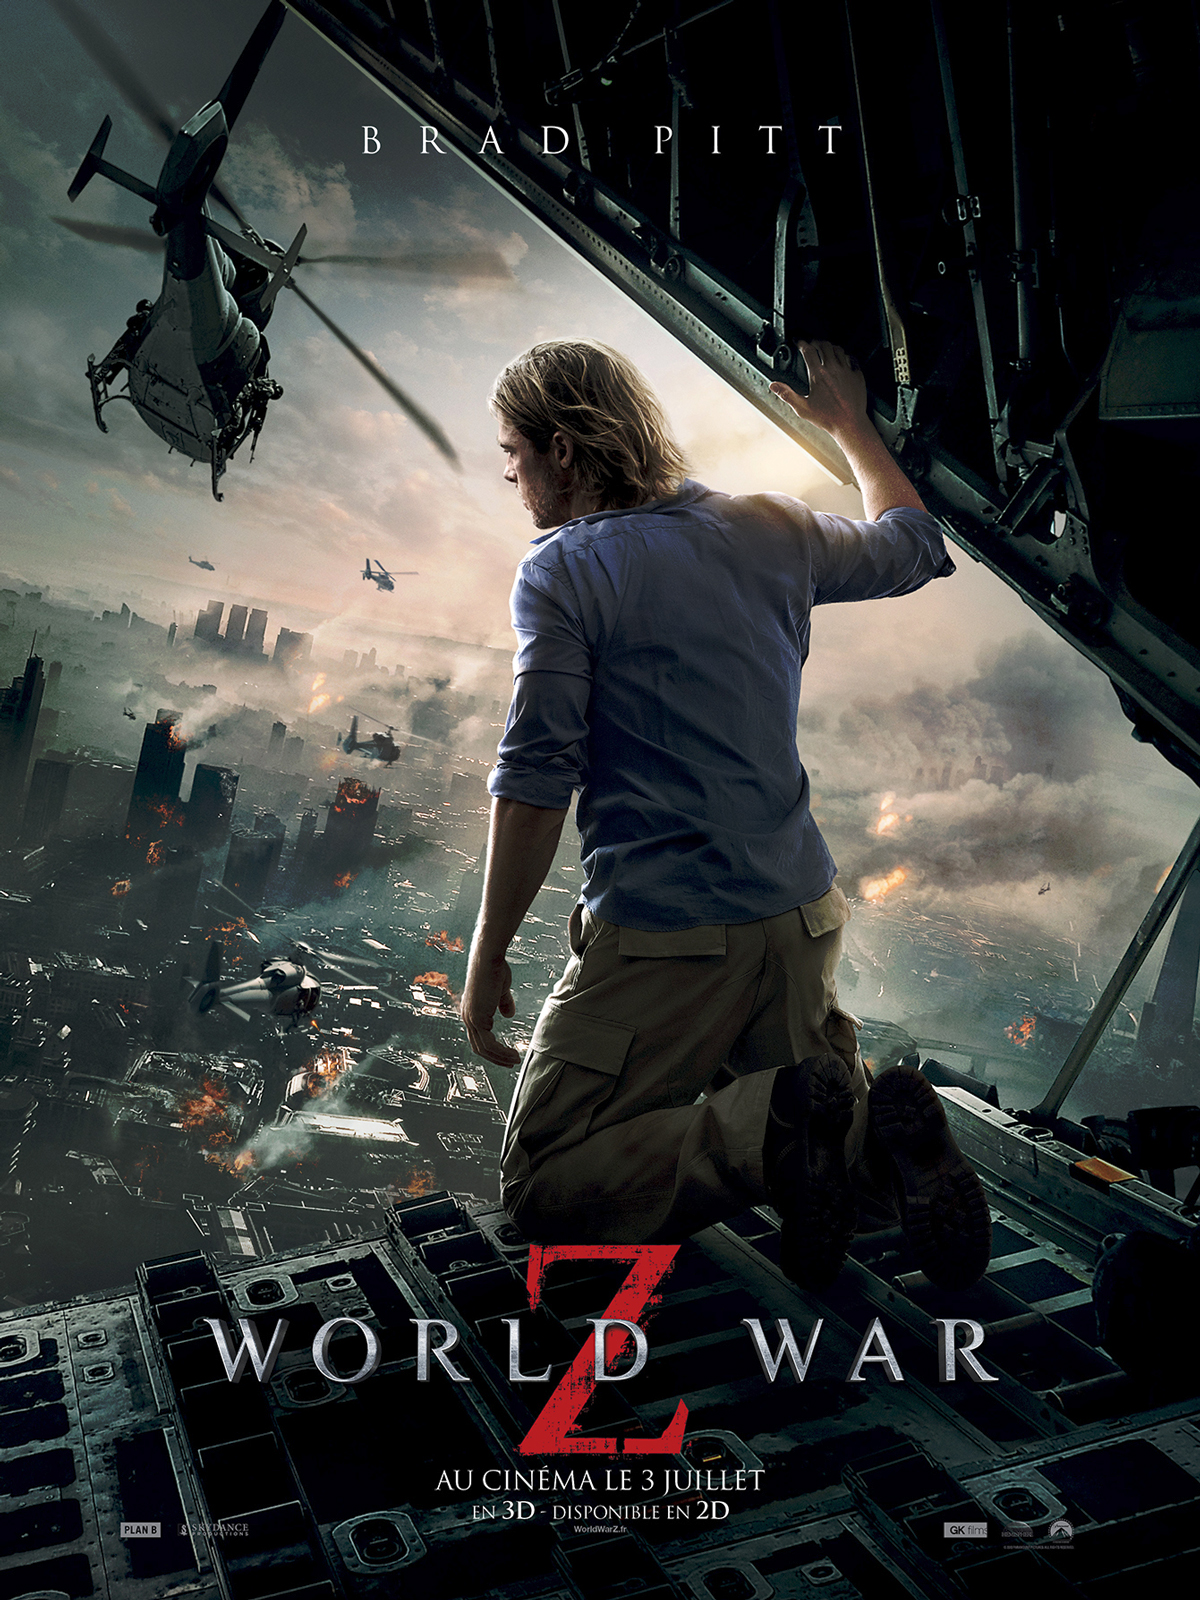 World War Z | FileCloud | BDRiP | 2013 | EXTENDED | TRUEFRENCH | PROPER | Lien Rapide